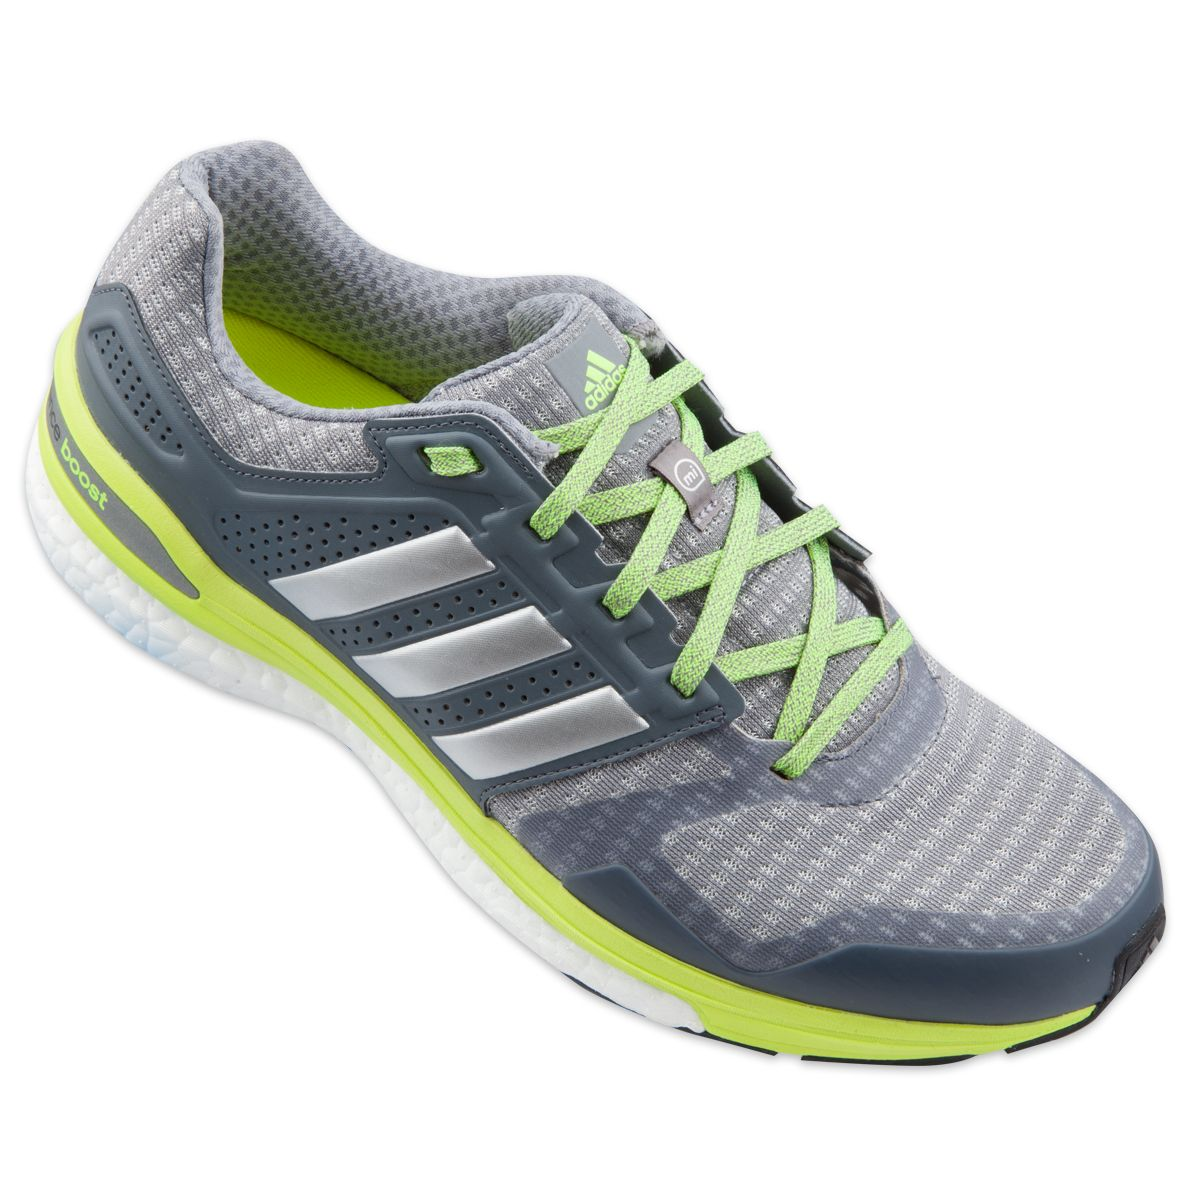 d1aa31bbbcbea adidas Supernova Sequence 8 Boost Mens -  159.99 CDN Stability and  cushioning meet in the adidas